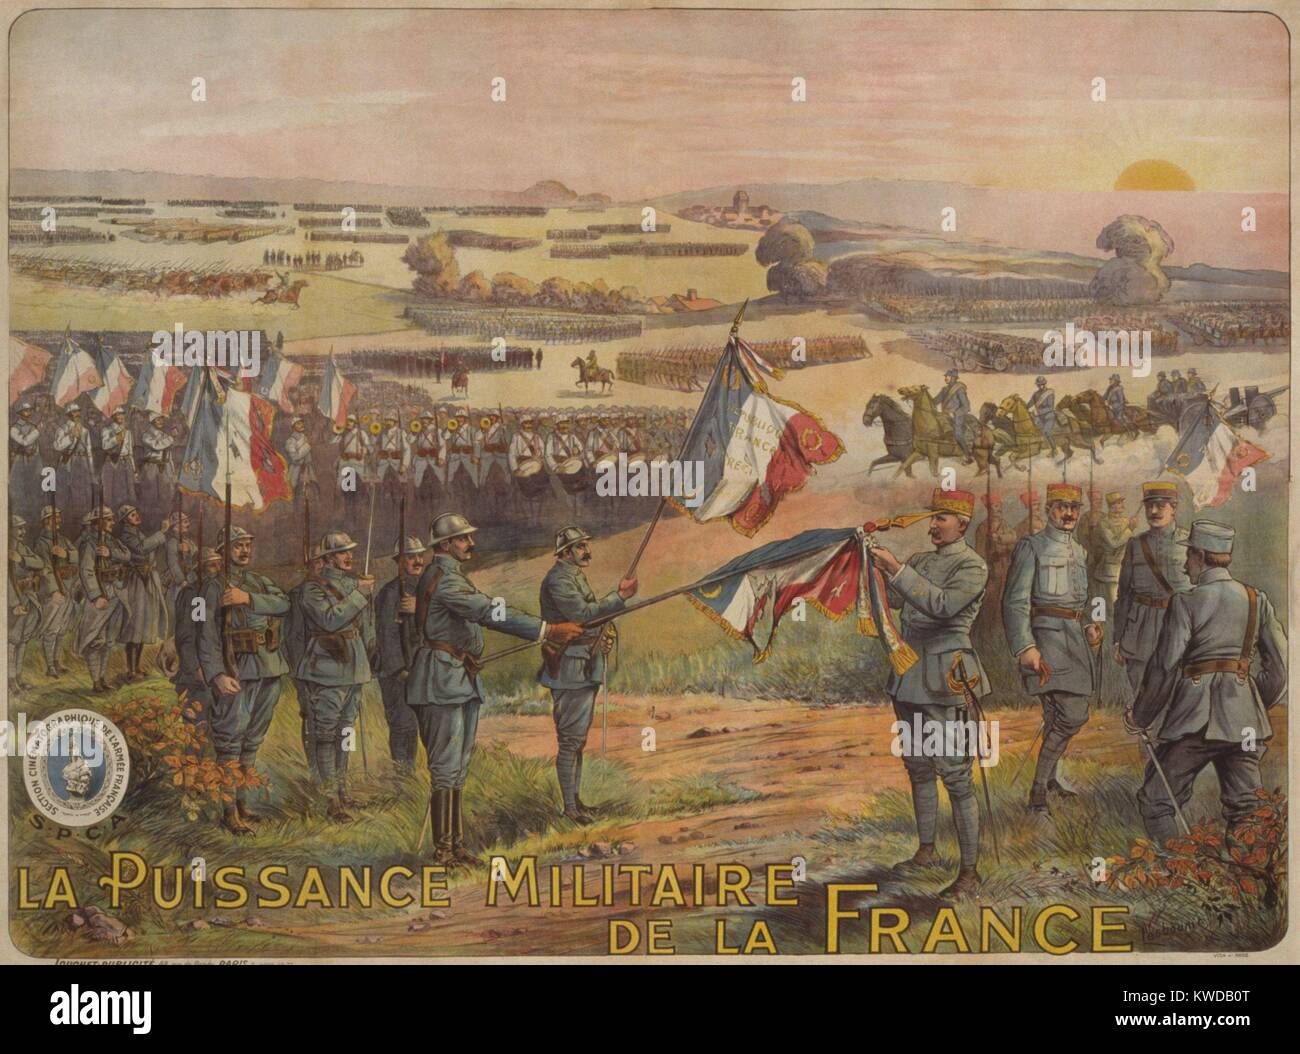 World War 1. 1917 French poster celebrating La Puissance Militaire de la Francs (The Power of the French Military). - Stock Image